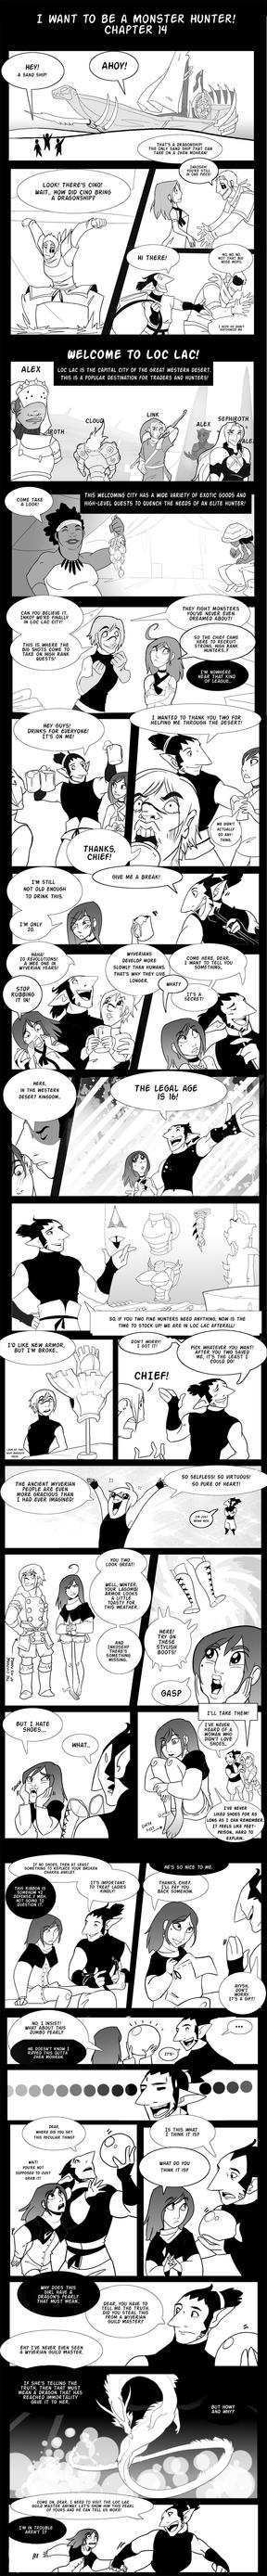 Monster Hunter Comic Ch 14-1 by macawnivore